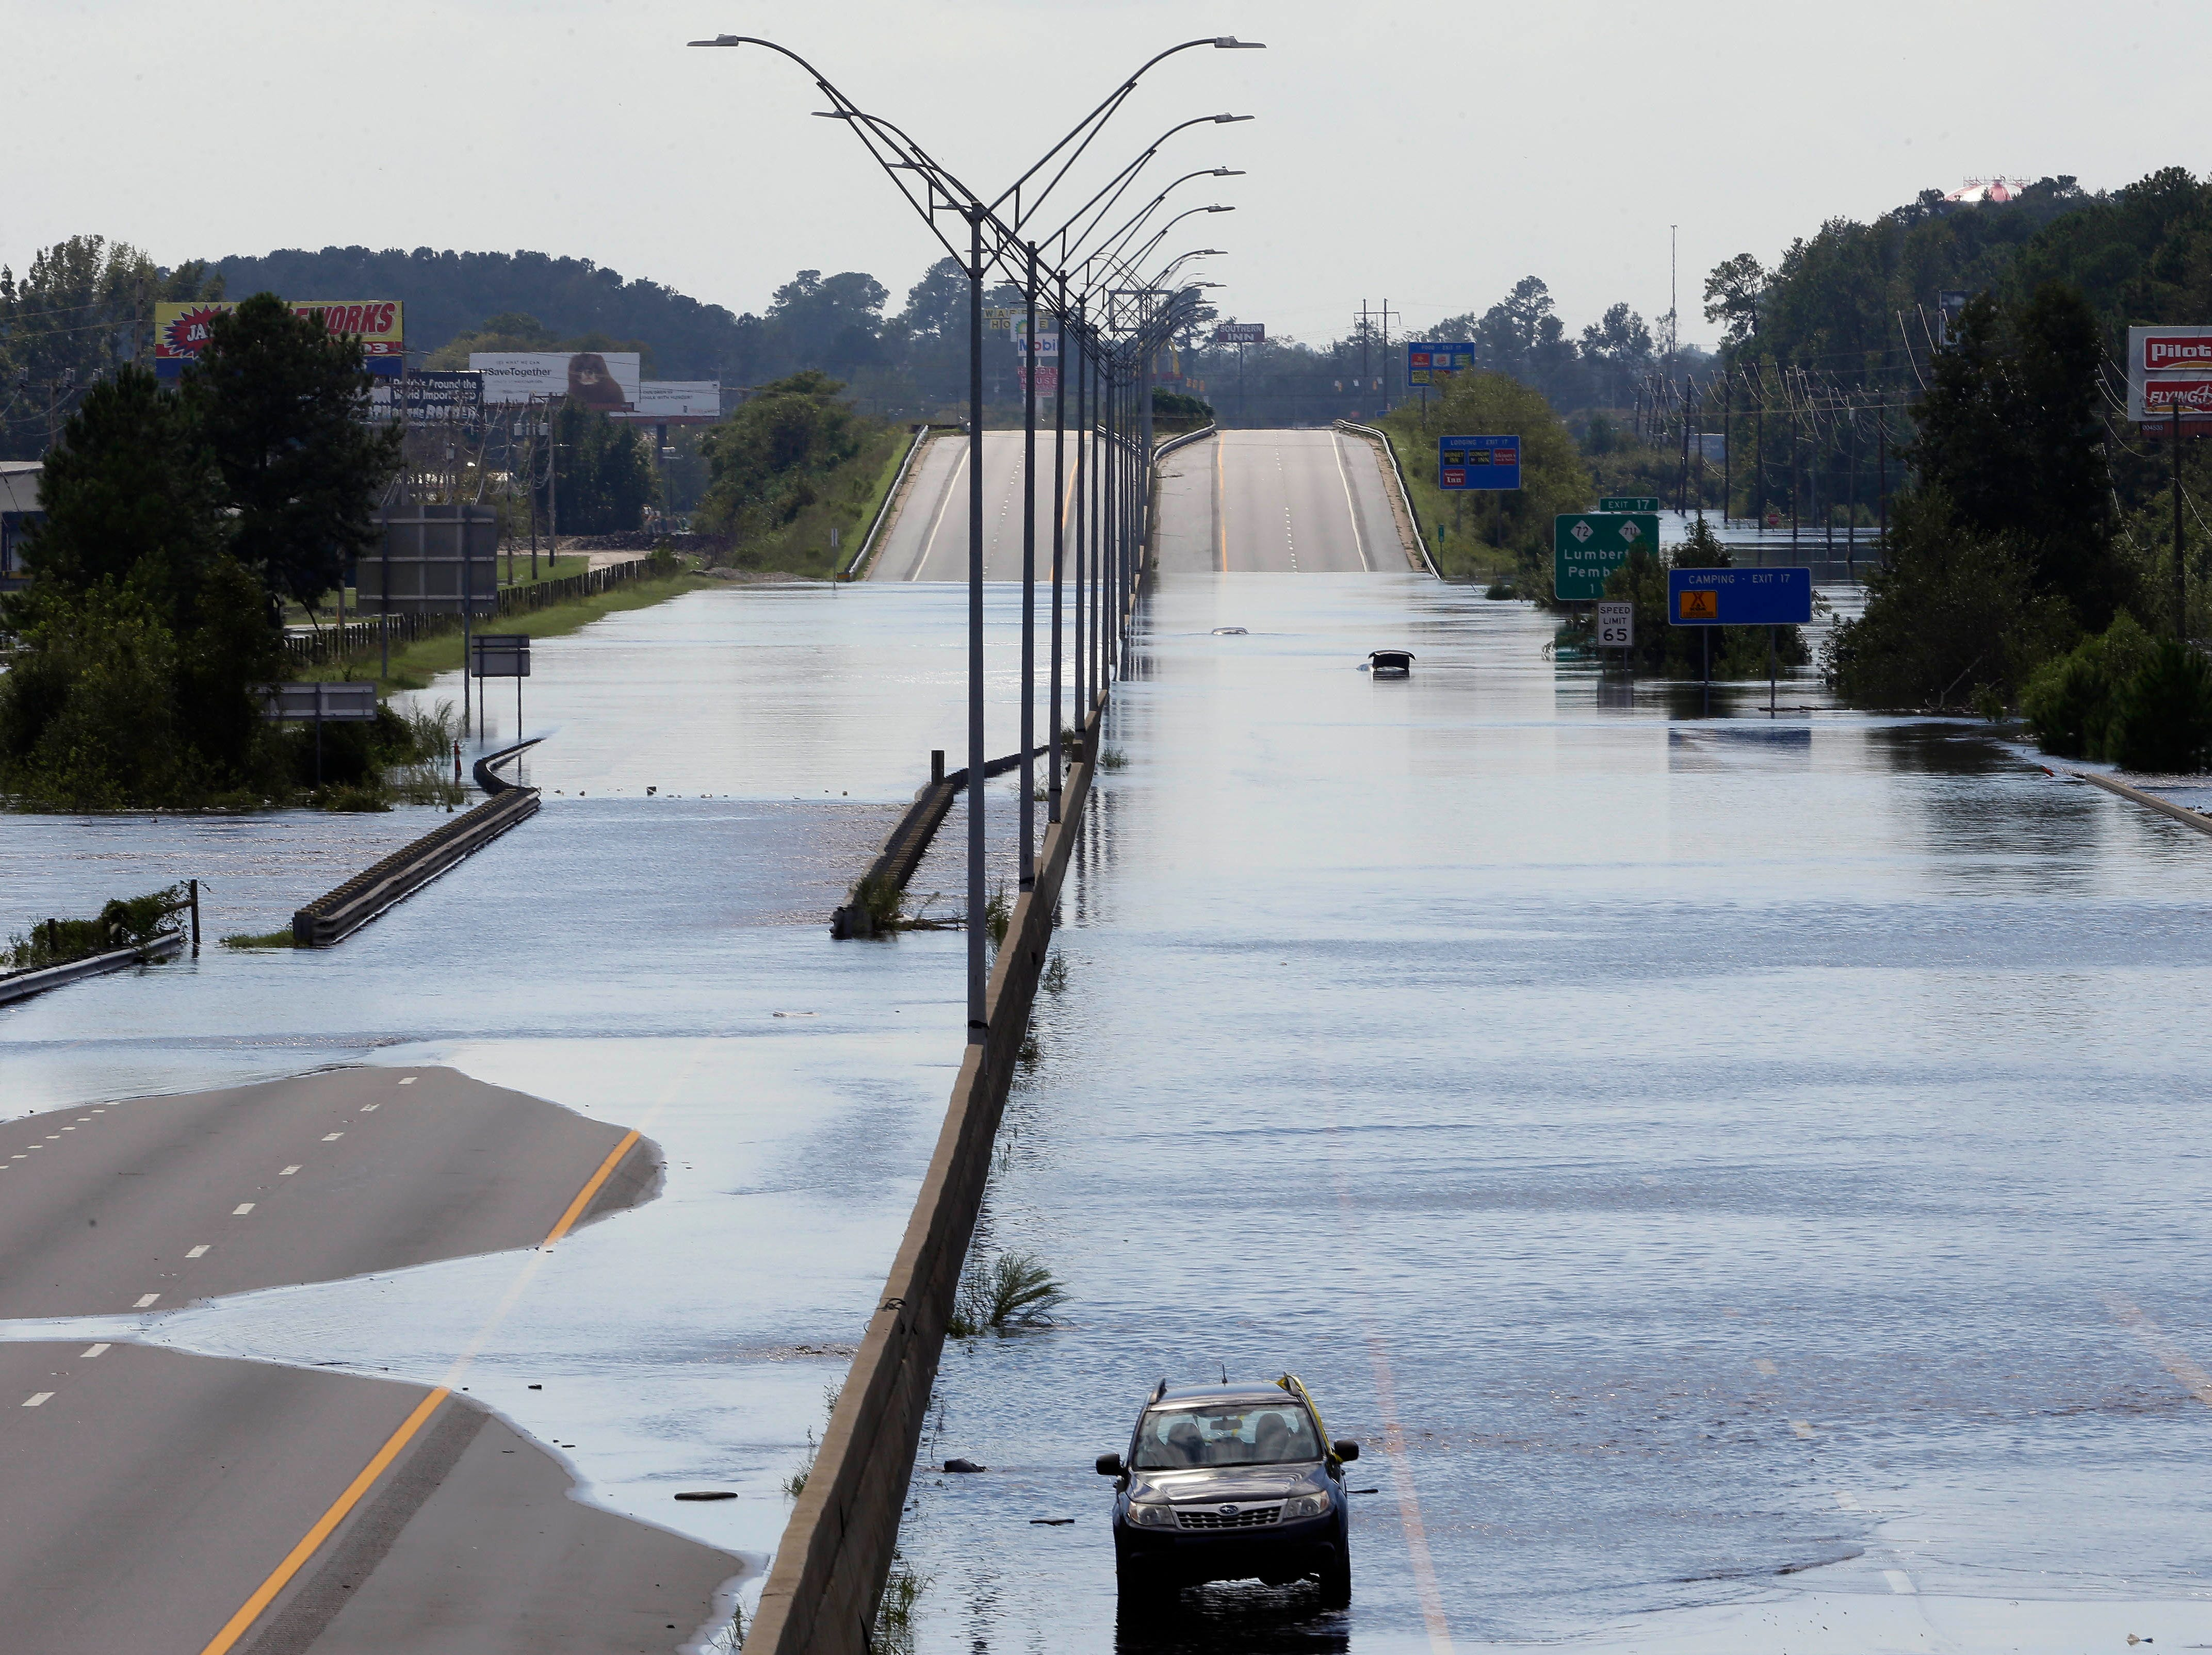 In this Sept. 17 photo, flooded vehicles sit on a closed section of Interstate 95 in Lumberton, where the Lumber river overflowed following flooding from Hurricane Florence.